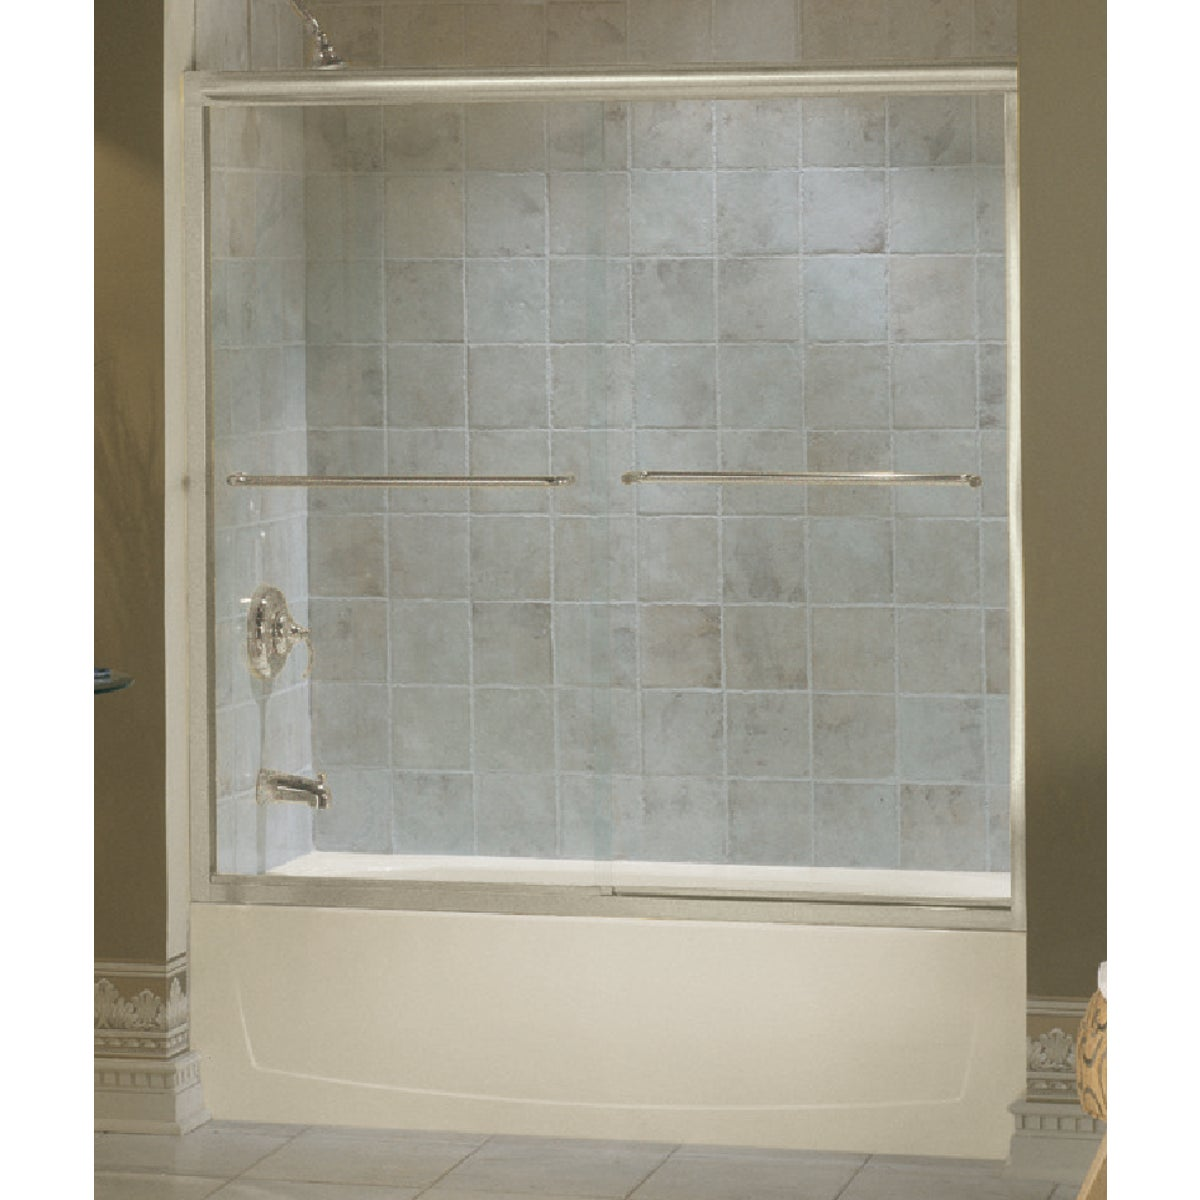 NICKEL BY-PASS TUB DOOR - 5425-59N-G05 by Sterling Doors